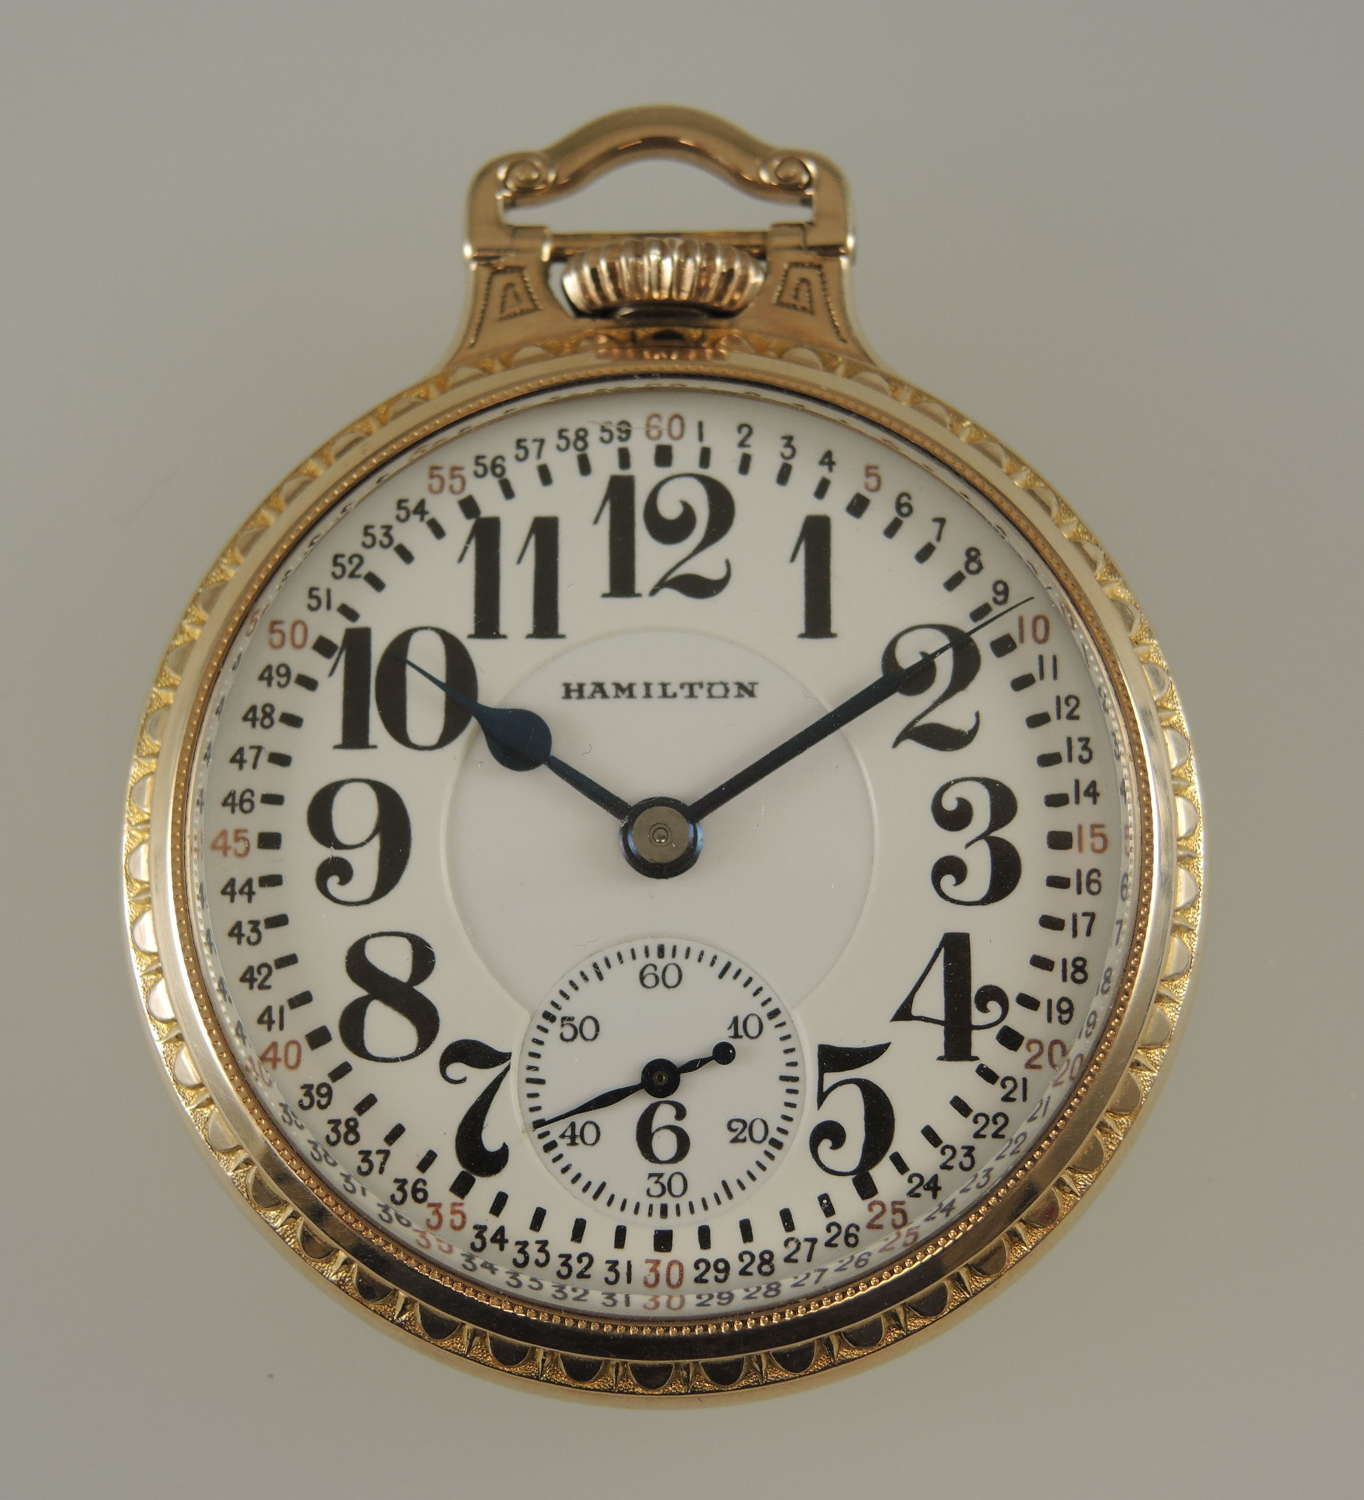 Pristine 16s 23J Hamilton 950 pocket watch c1934